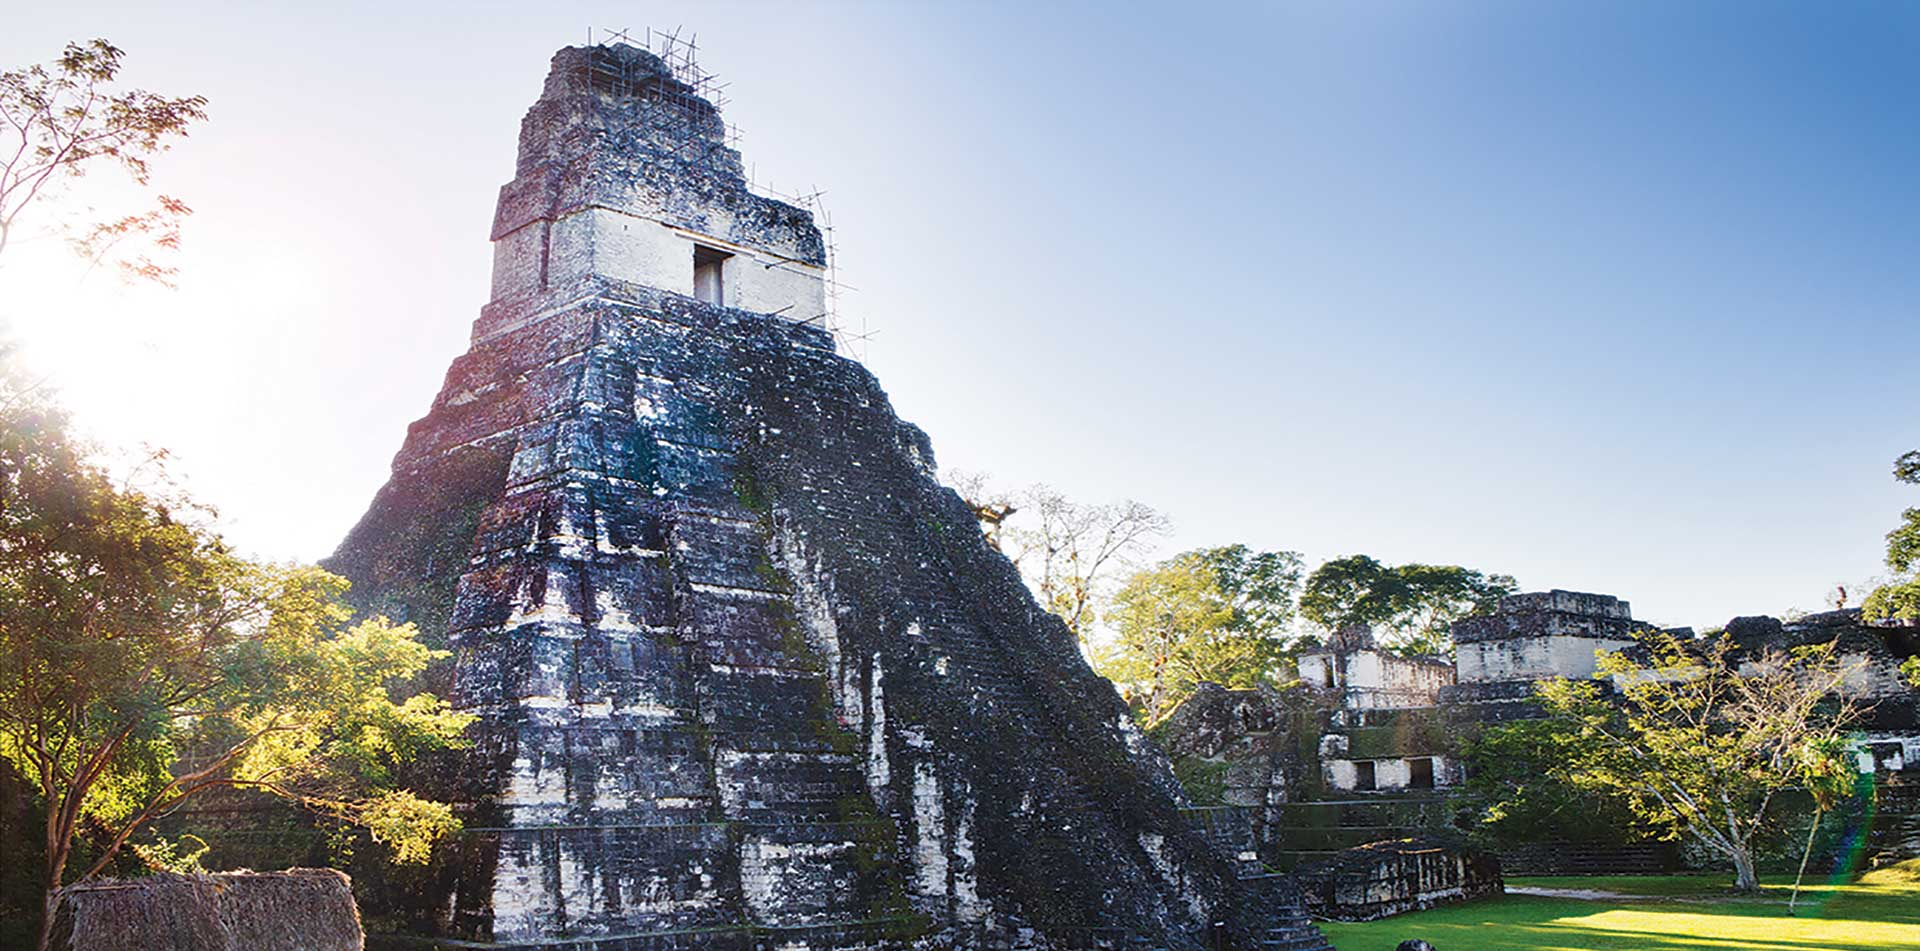 Belize North America Tikal Temple Historic Site Island Explore Tour - luxury vacation destinations